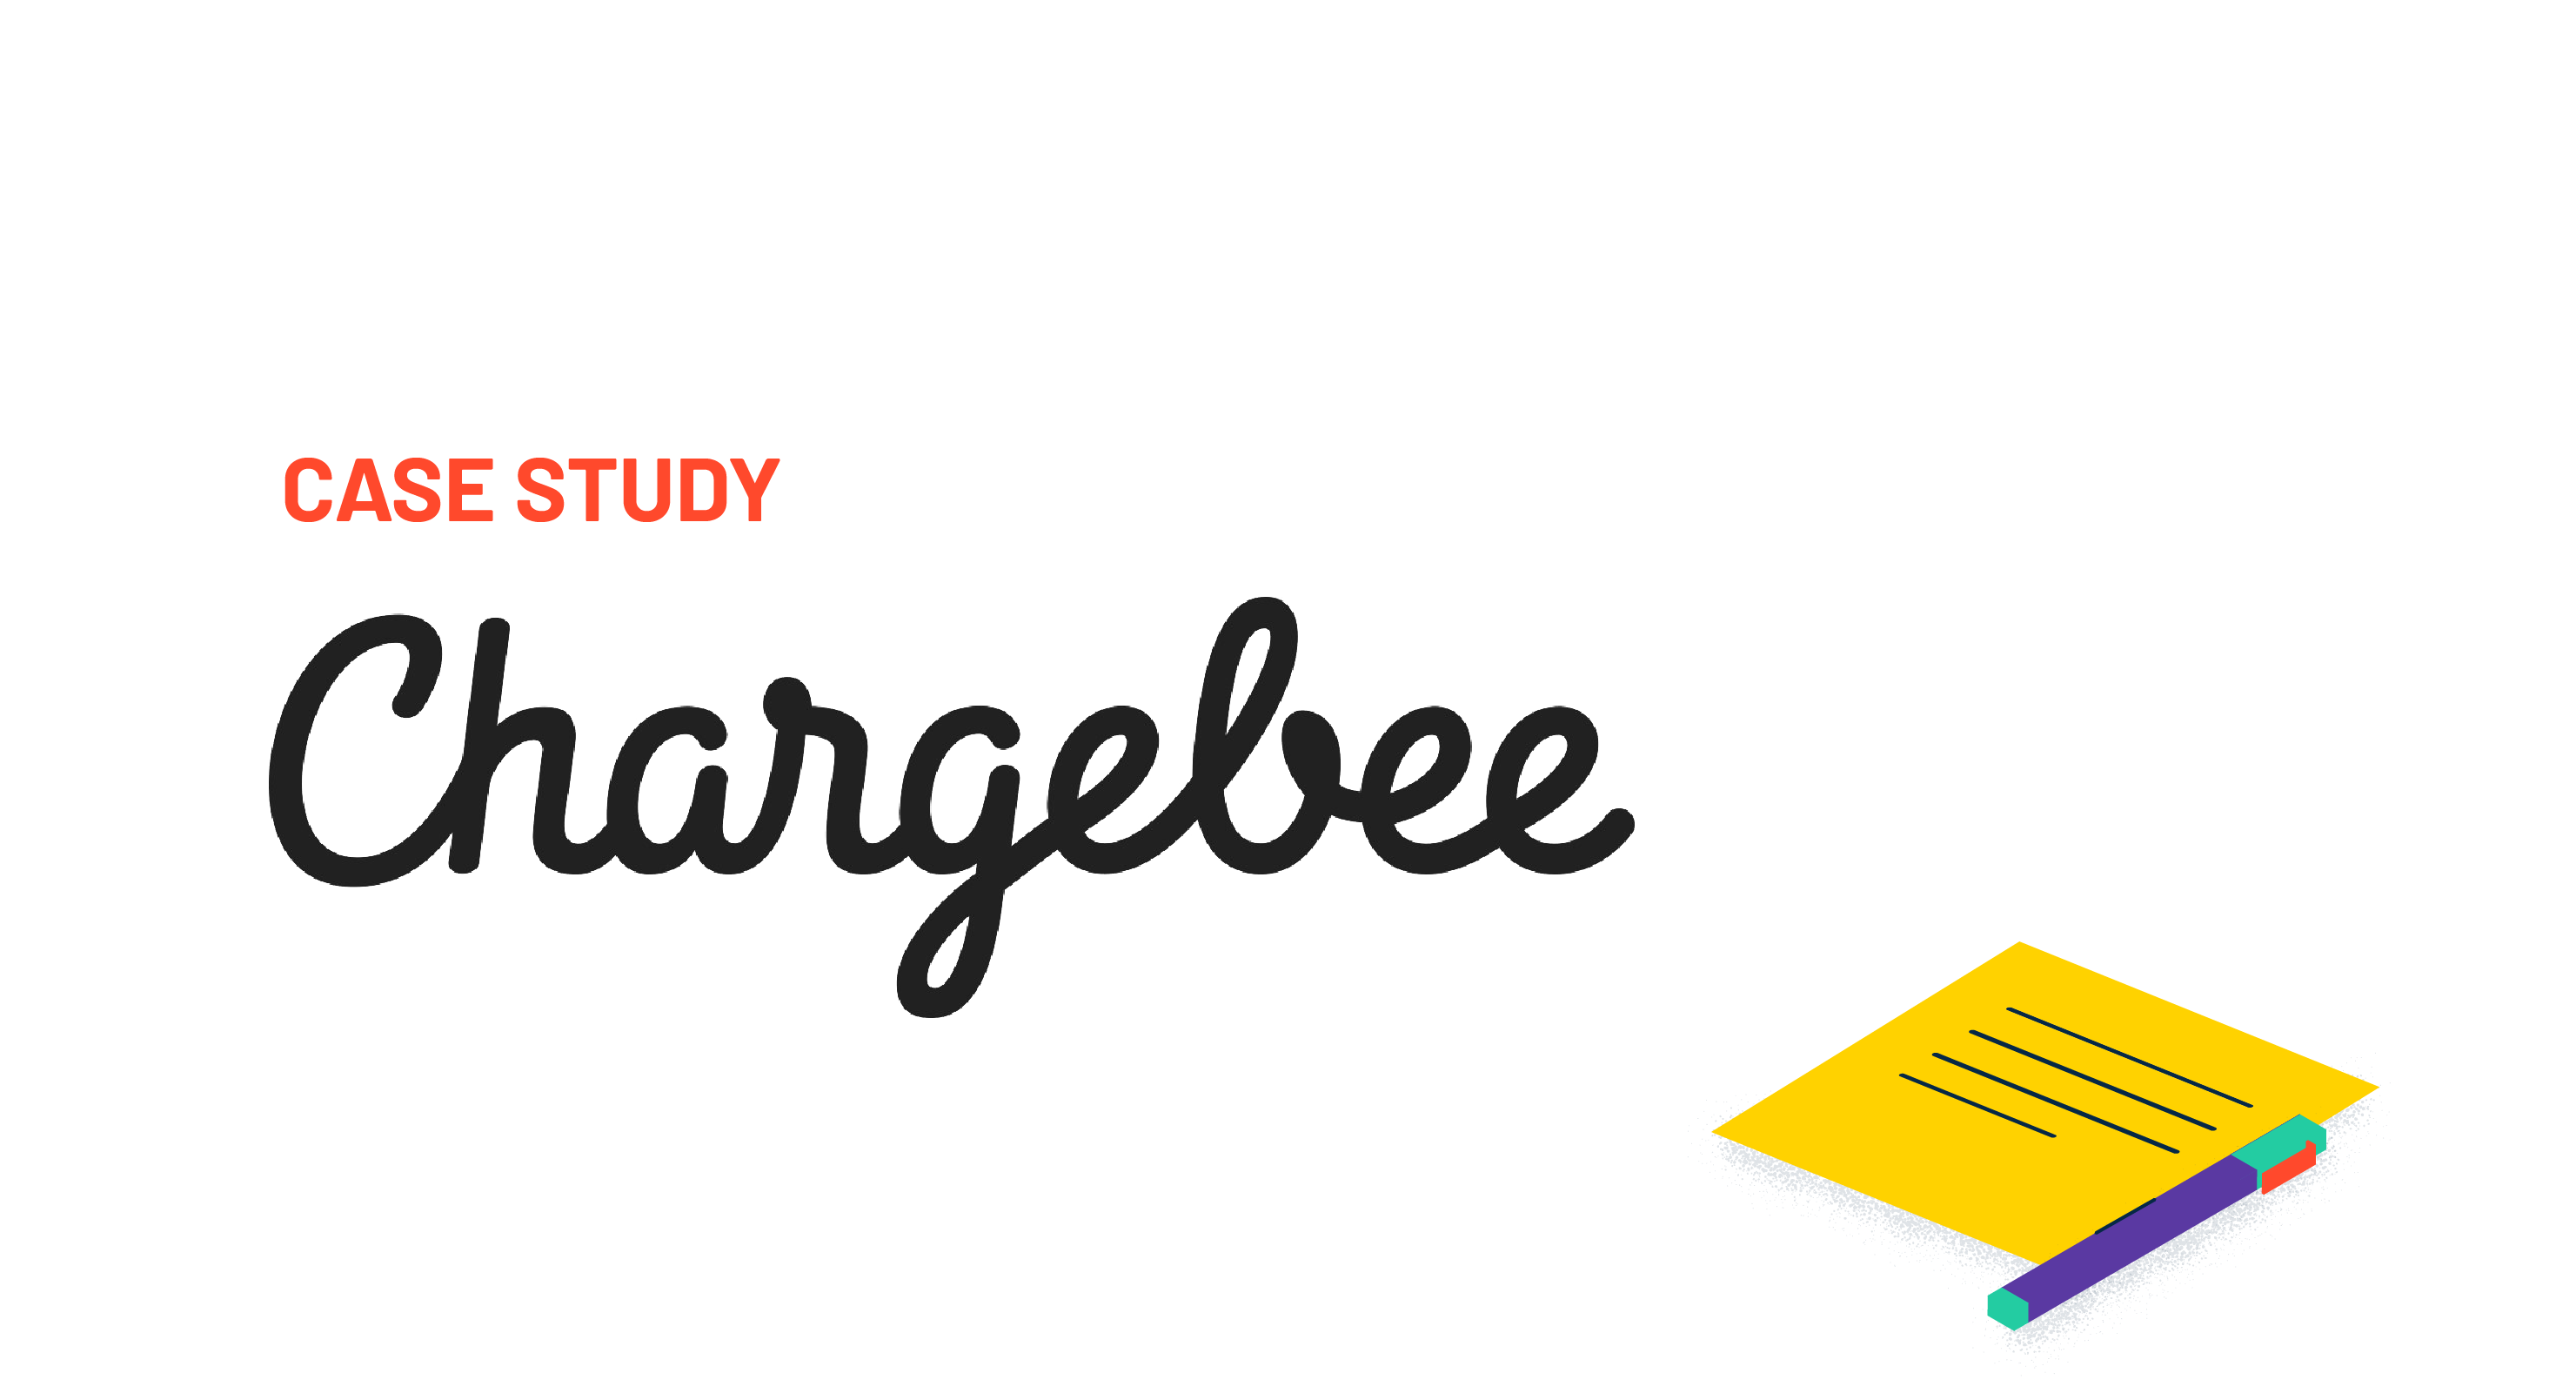 chargebee-generates-leads-g2-buyer-intent